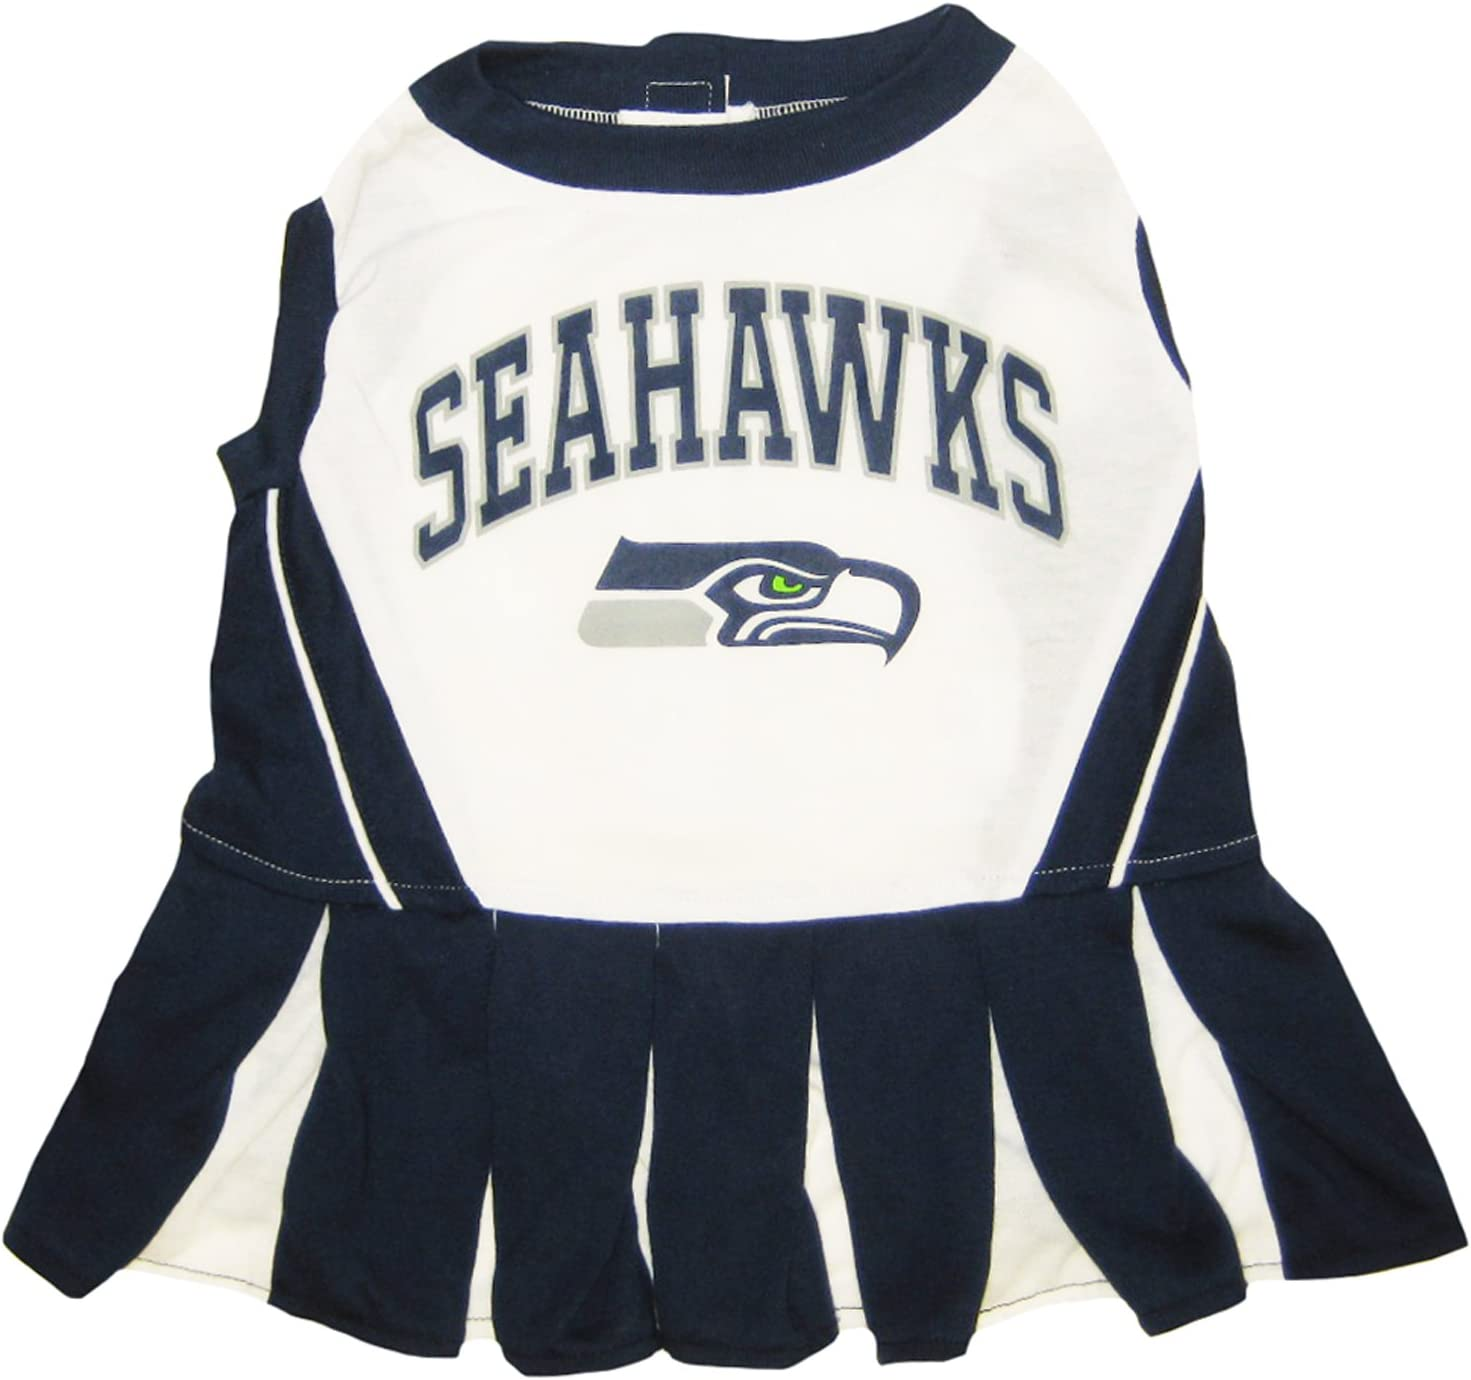 NFL CHEERLEADER For Dogs and Cats. - All 32 Teams and 3 Sizes available. - NFL Cheerleader Dress. - Cheerleader Outfit for Pets 71-61YOGF5L